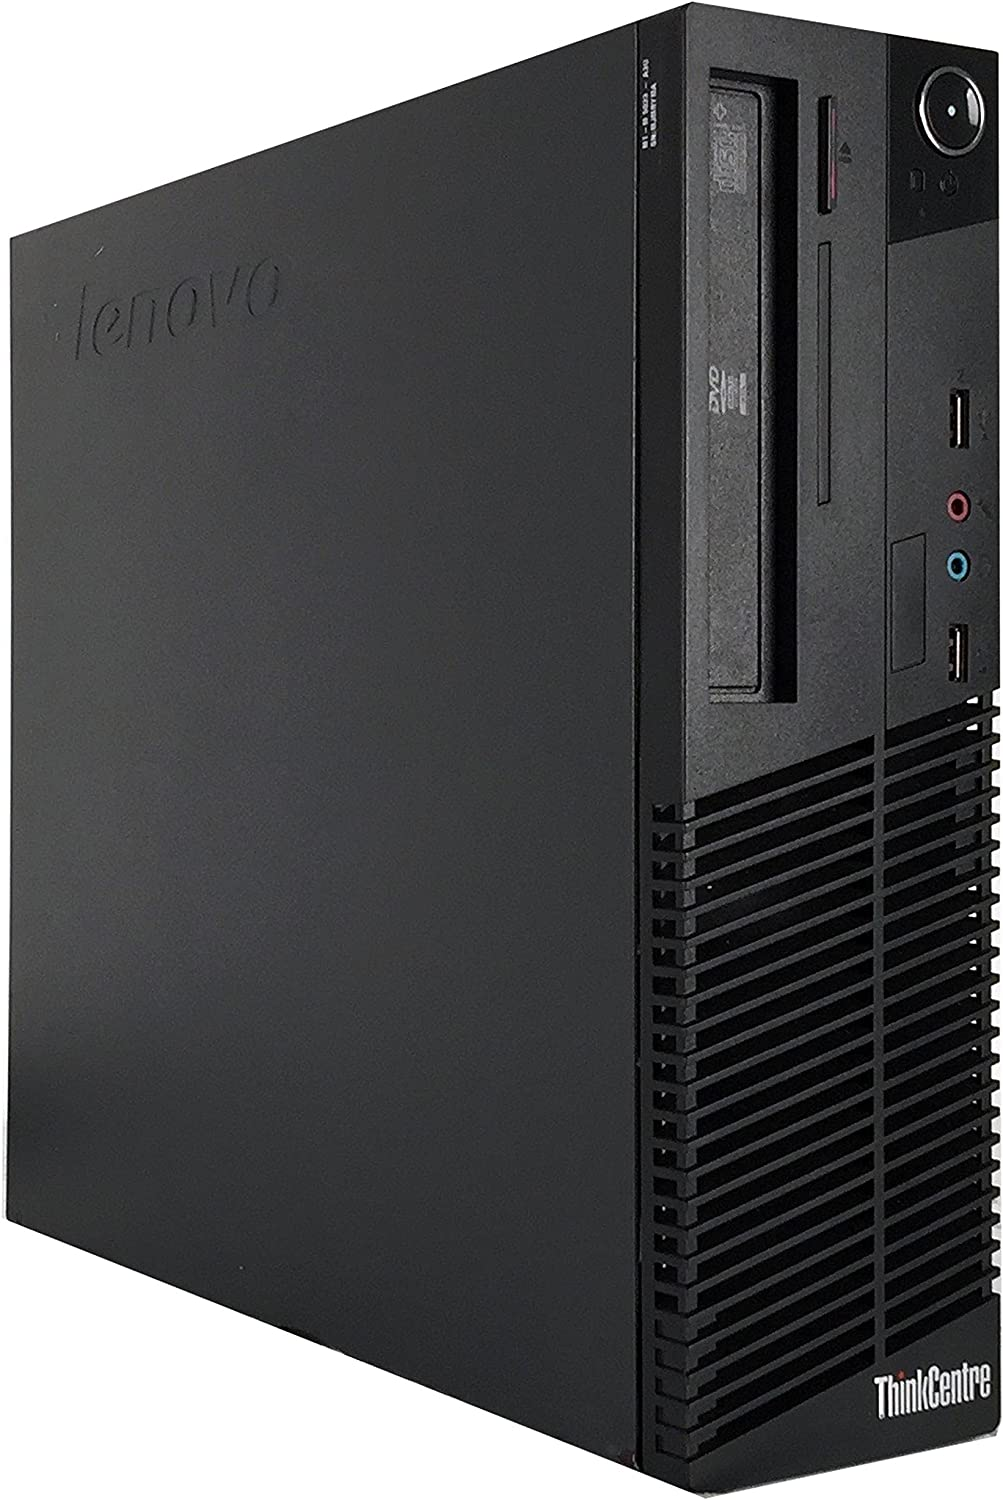 Lenovo ThinkCentre M78 Small Form Factor Desktop Computer (AMD A8-5500B 3.2GHz Quad-Core, 8GB DDR3 RAM, 500GB, DVD-ROM,USB WIFI, Windows 10 Pro 64-Bit) (Renewed)